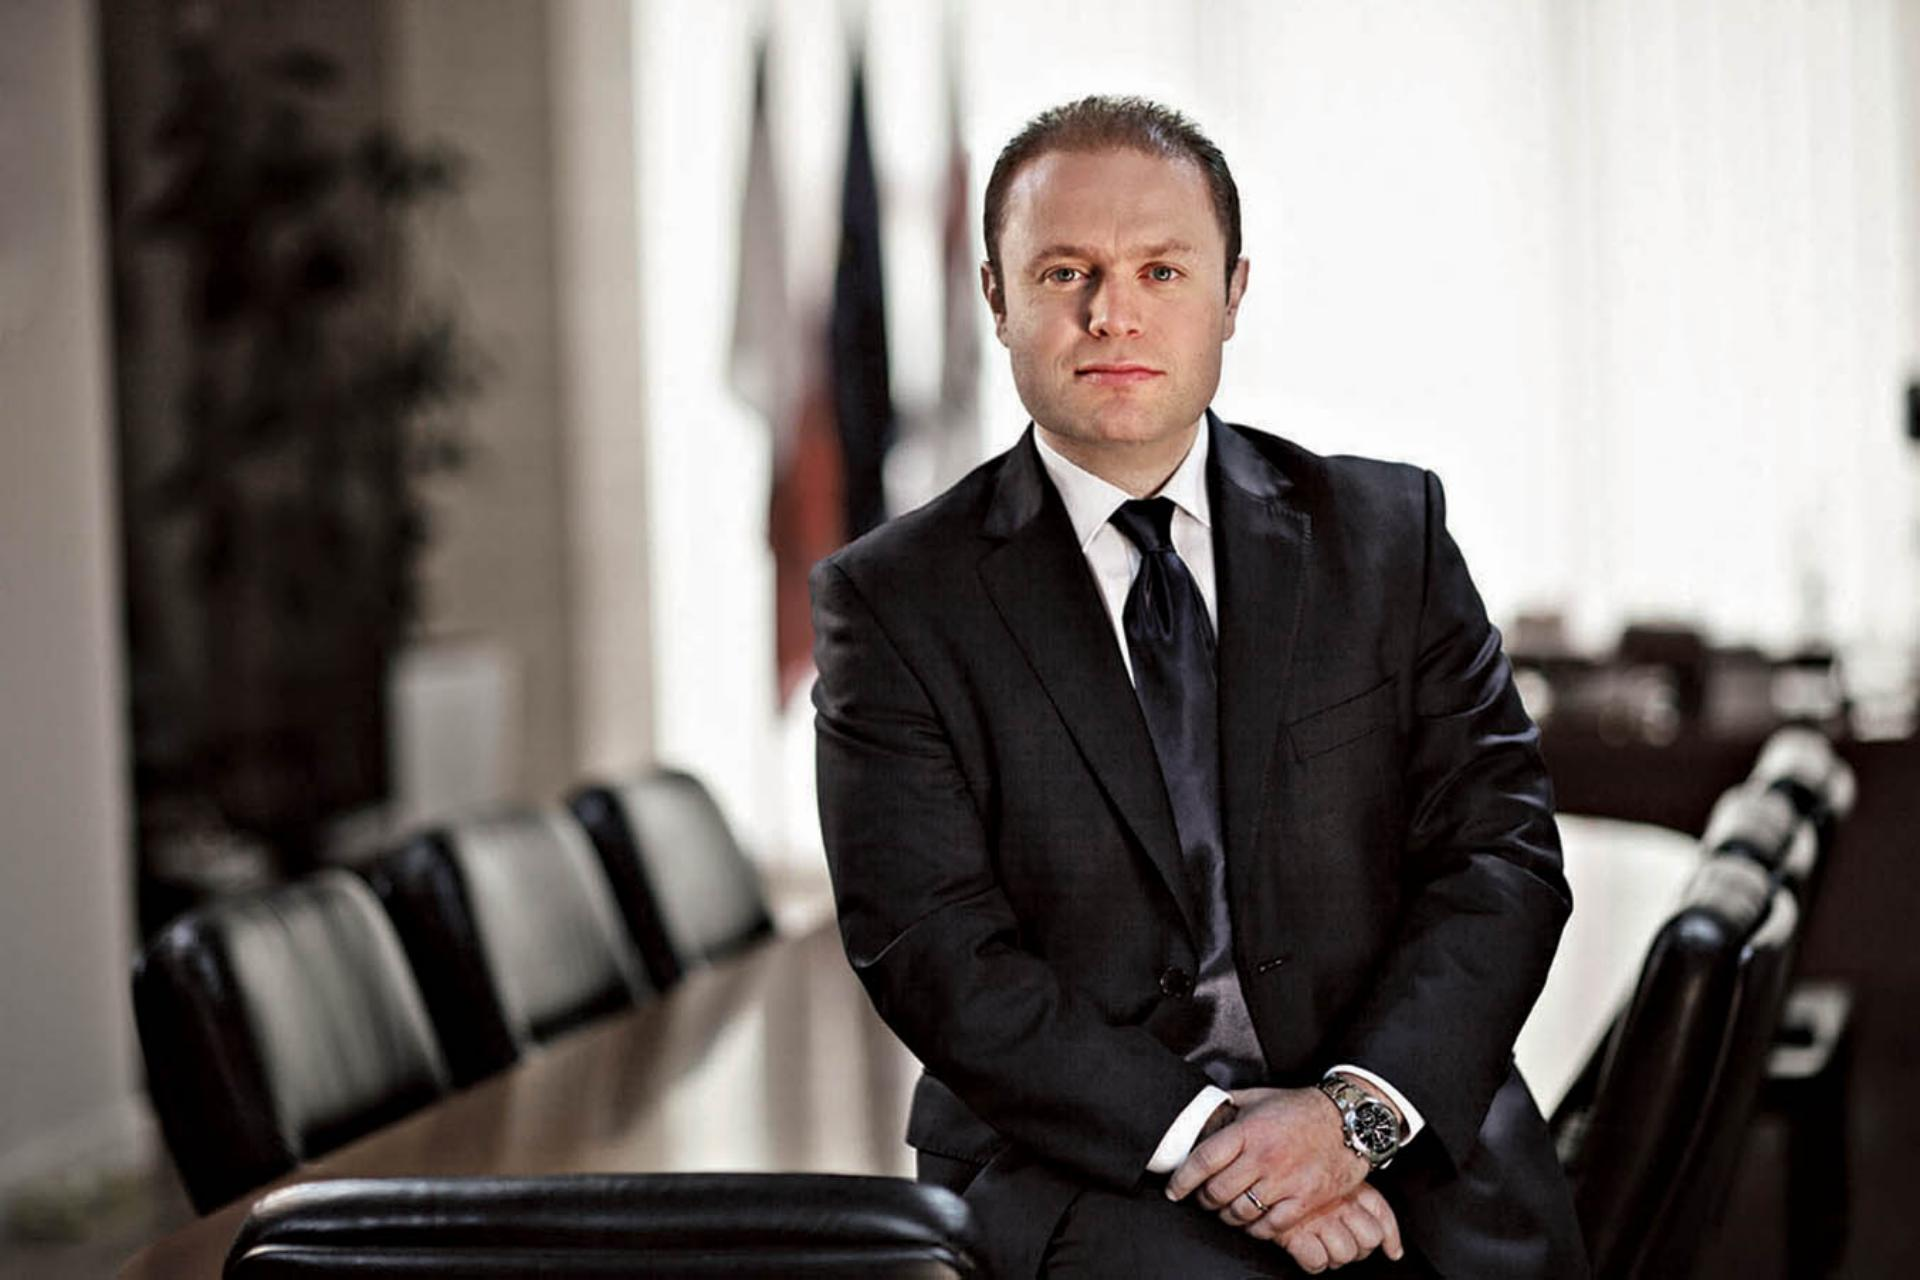 OCCRP Person of the Year in Organized Crime and Corruption: Joseph Muscat